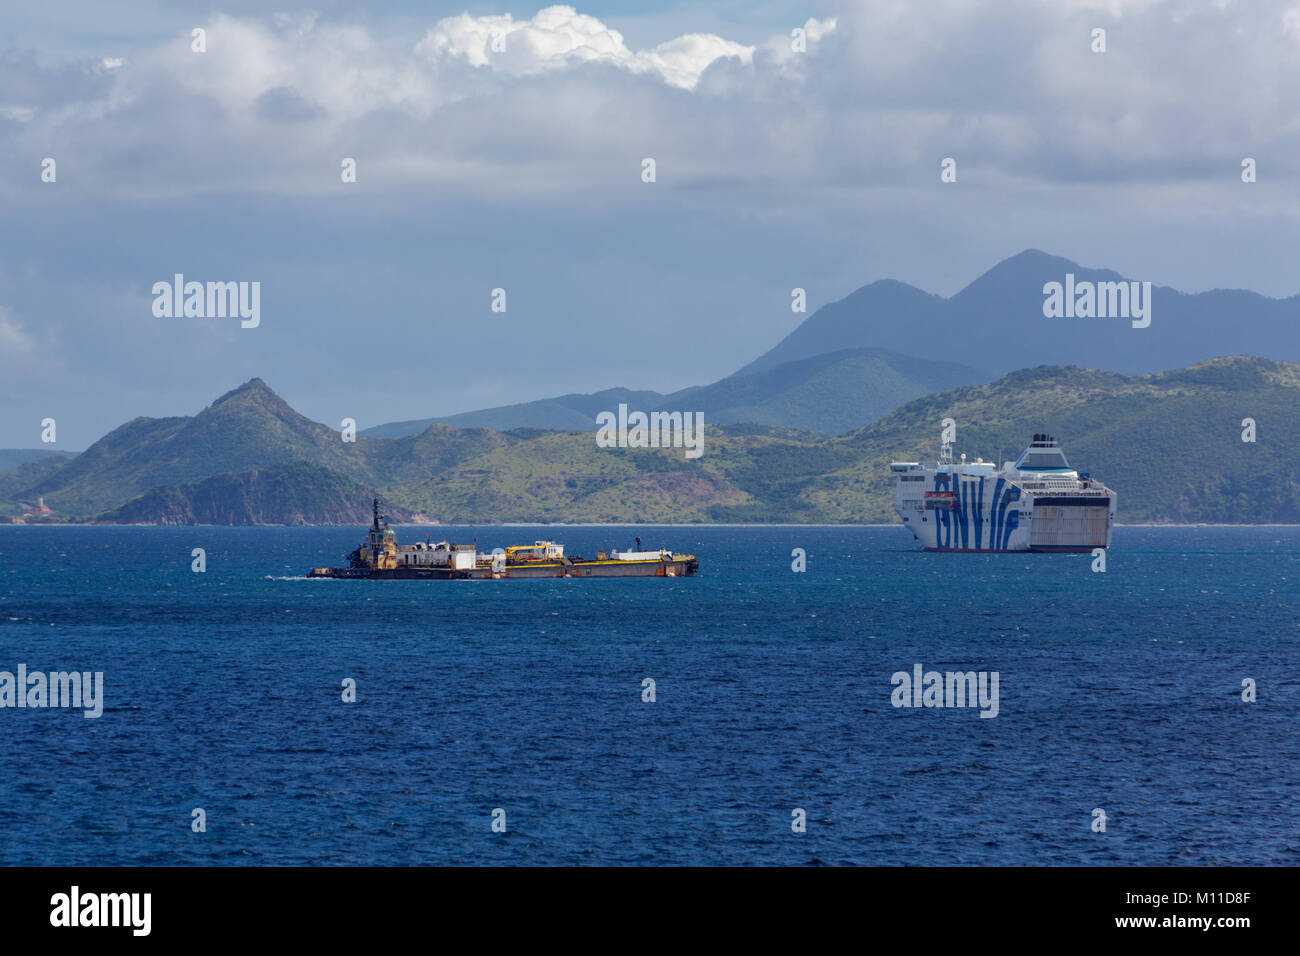 Ferry and Tanker Moored in St Kitts - Stock Image